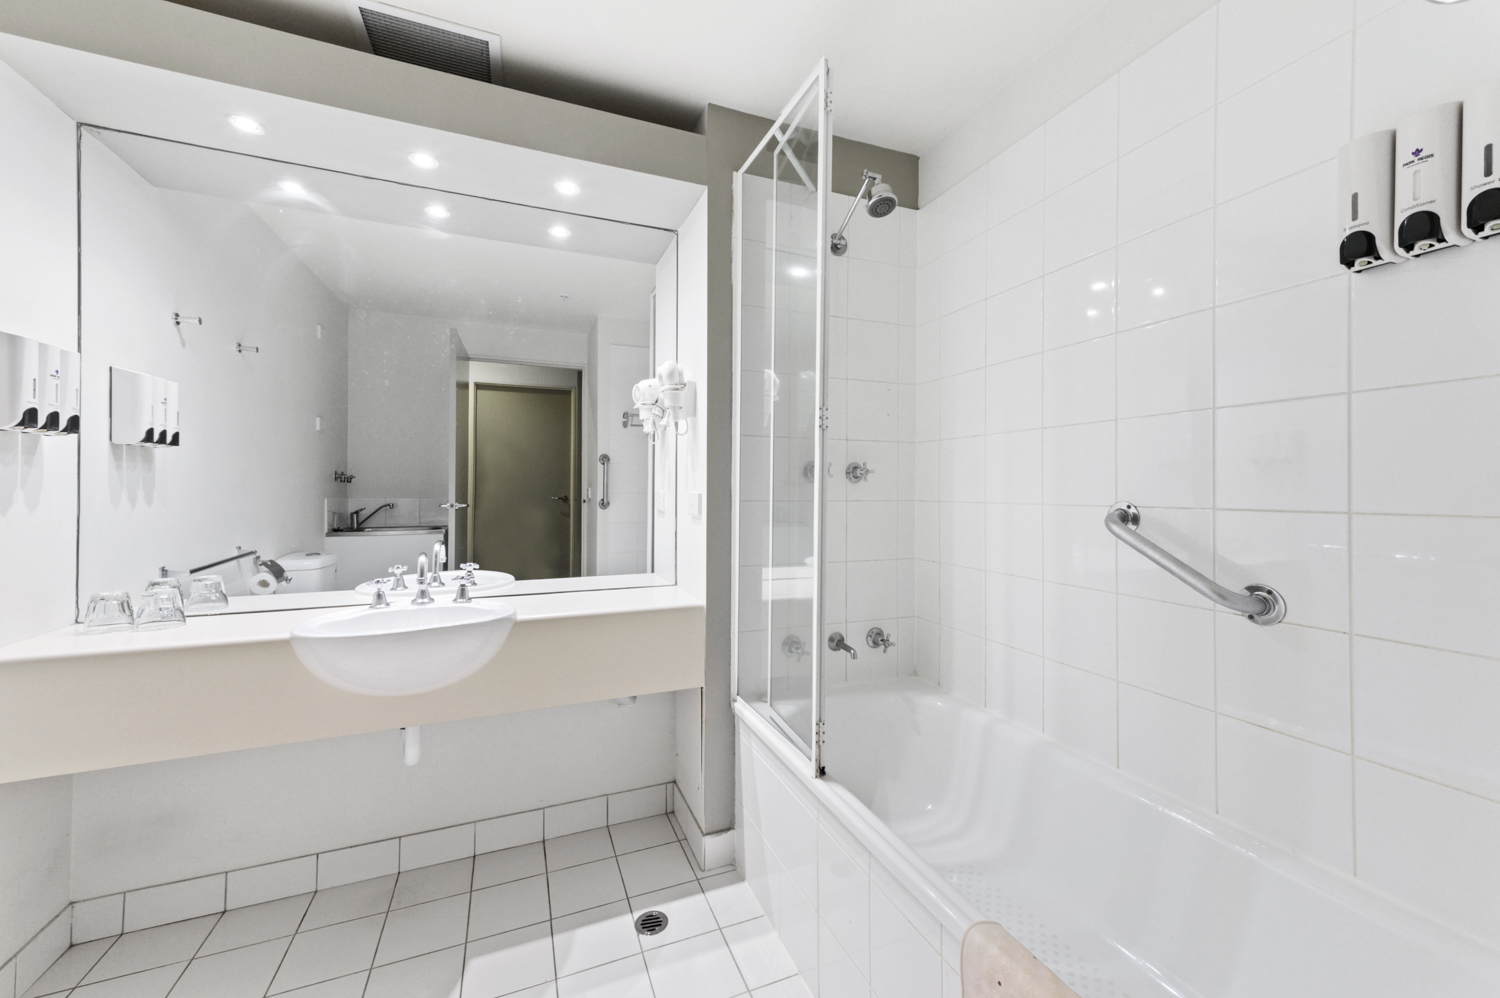 307-604-st-kilda-road-melbourne-student-accommodation-Melbourne-Bathroom-Unilodgers